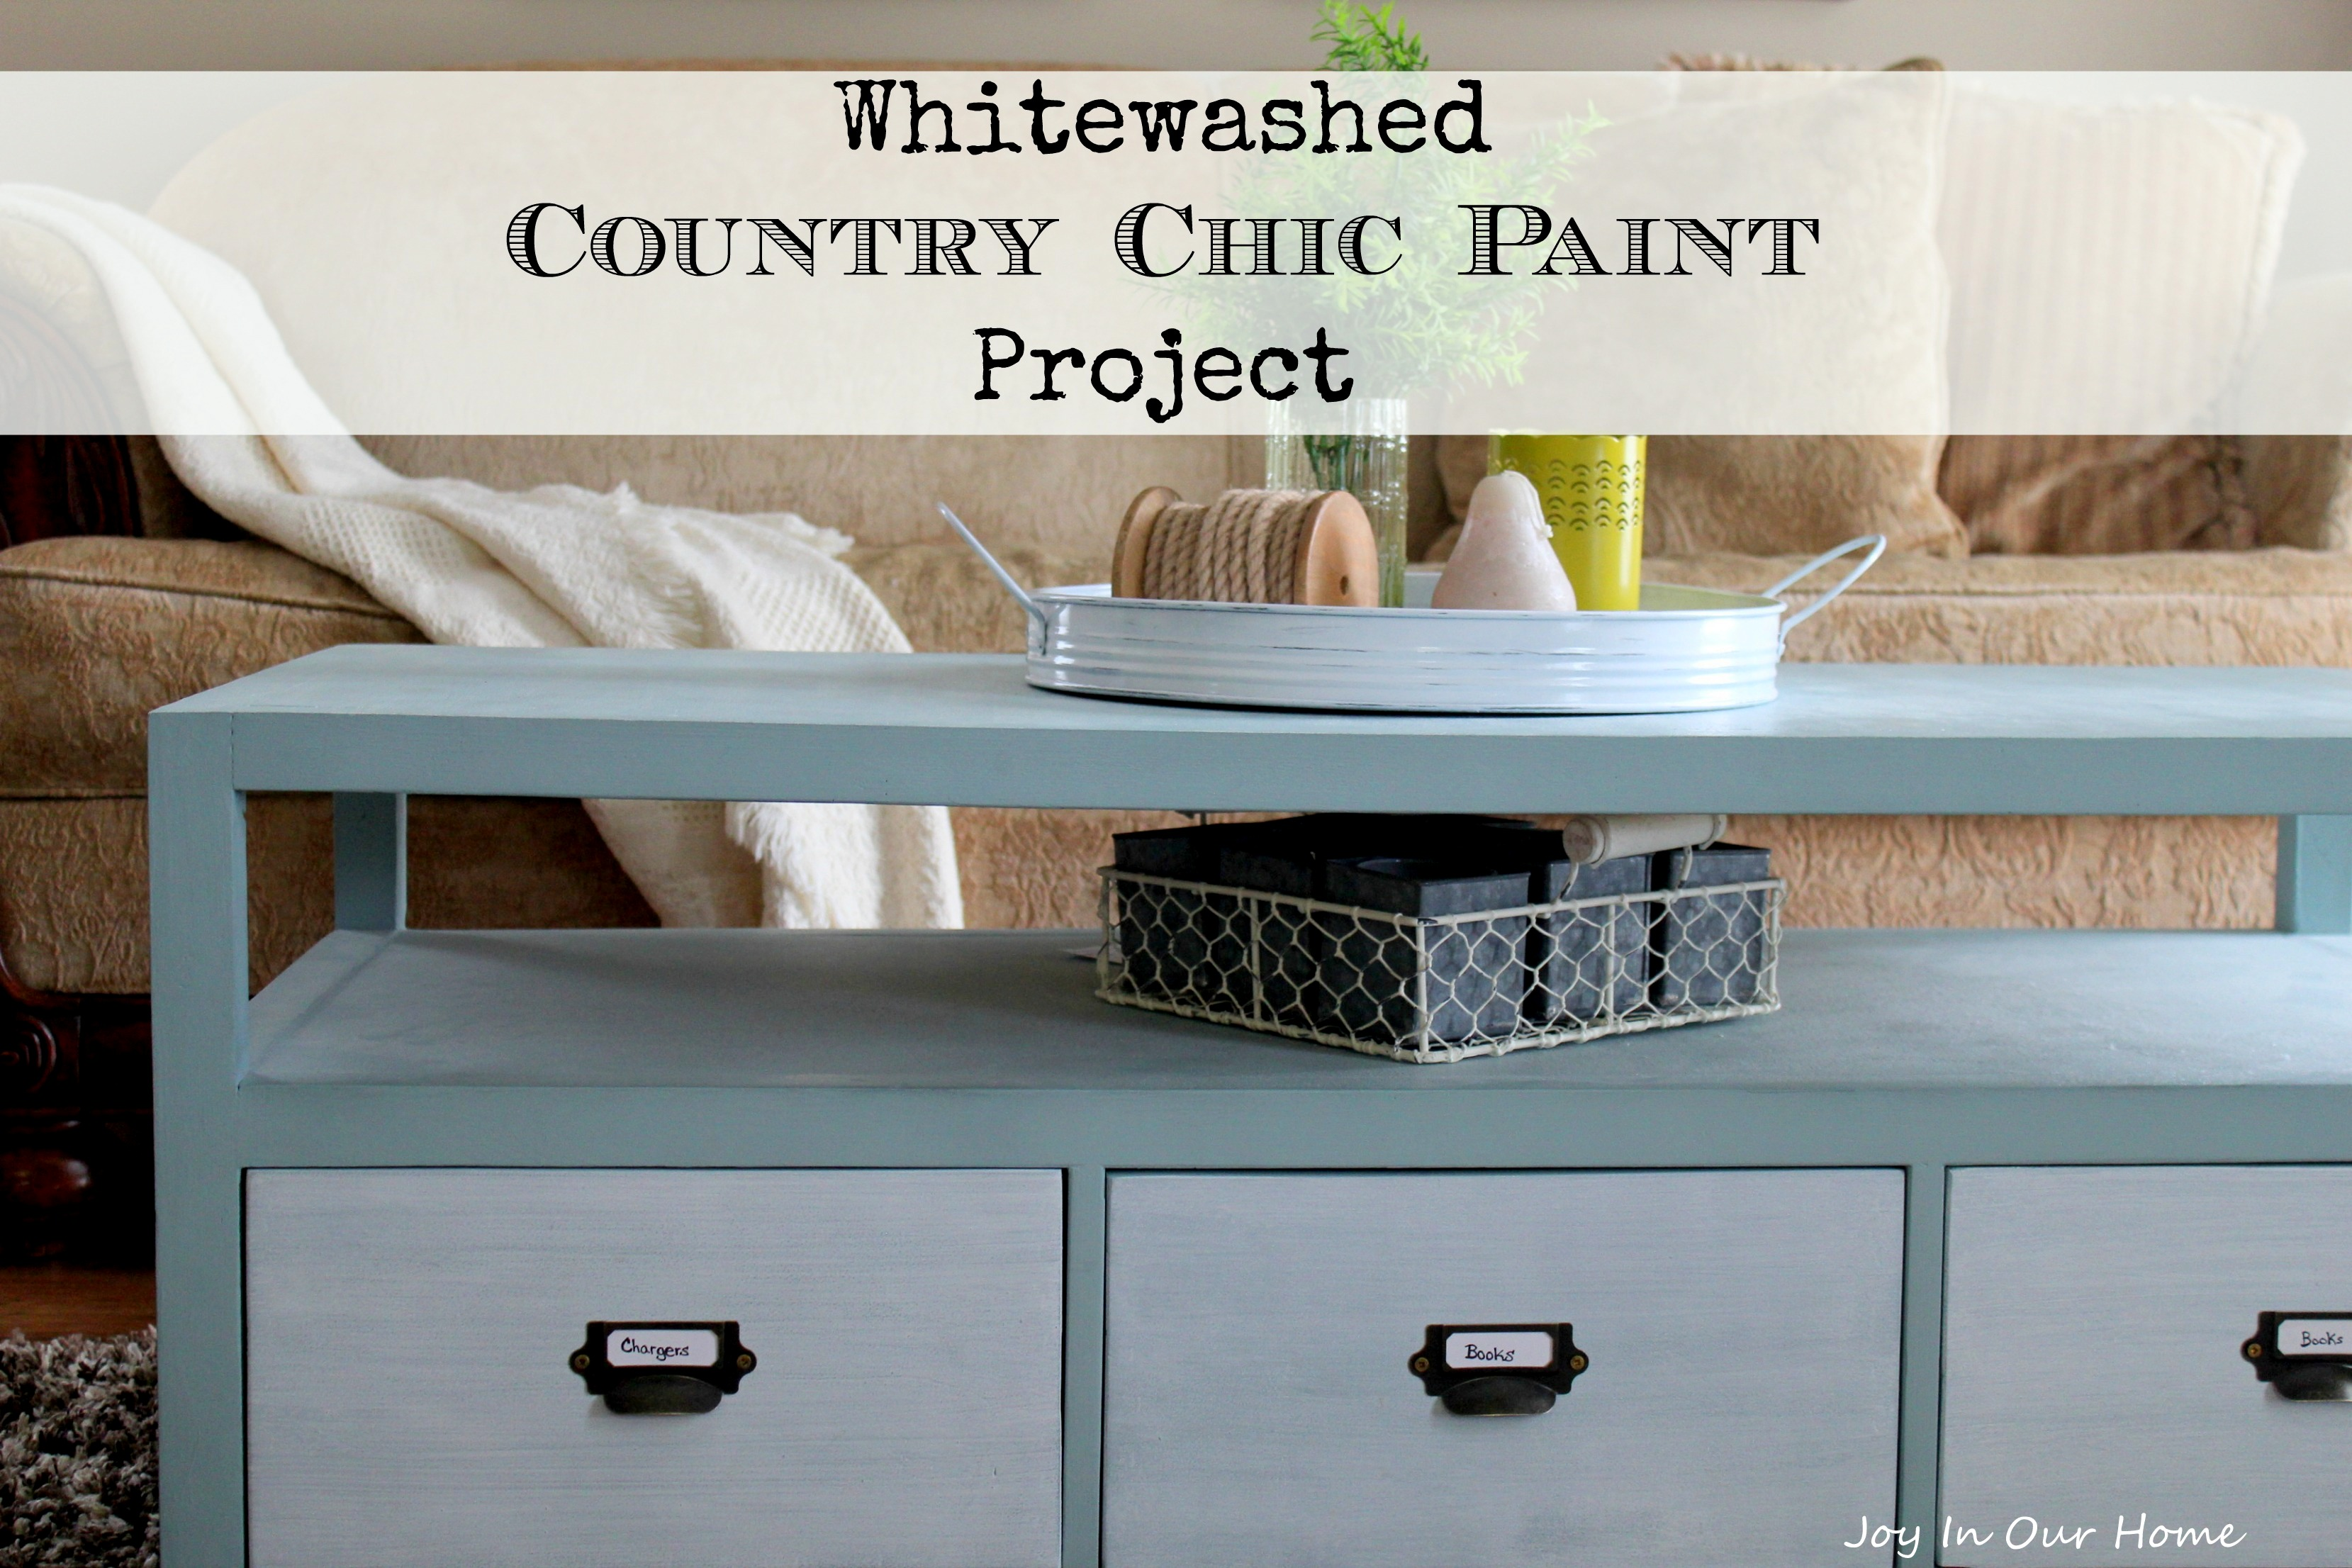 Whitewashed Country Chic Paint Project